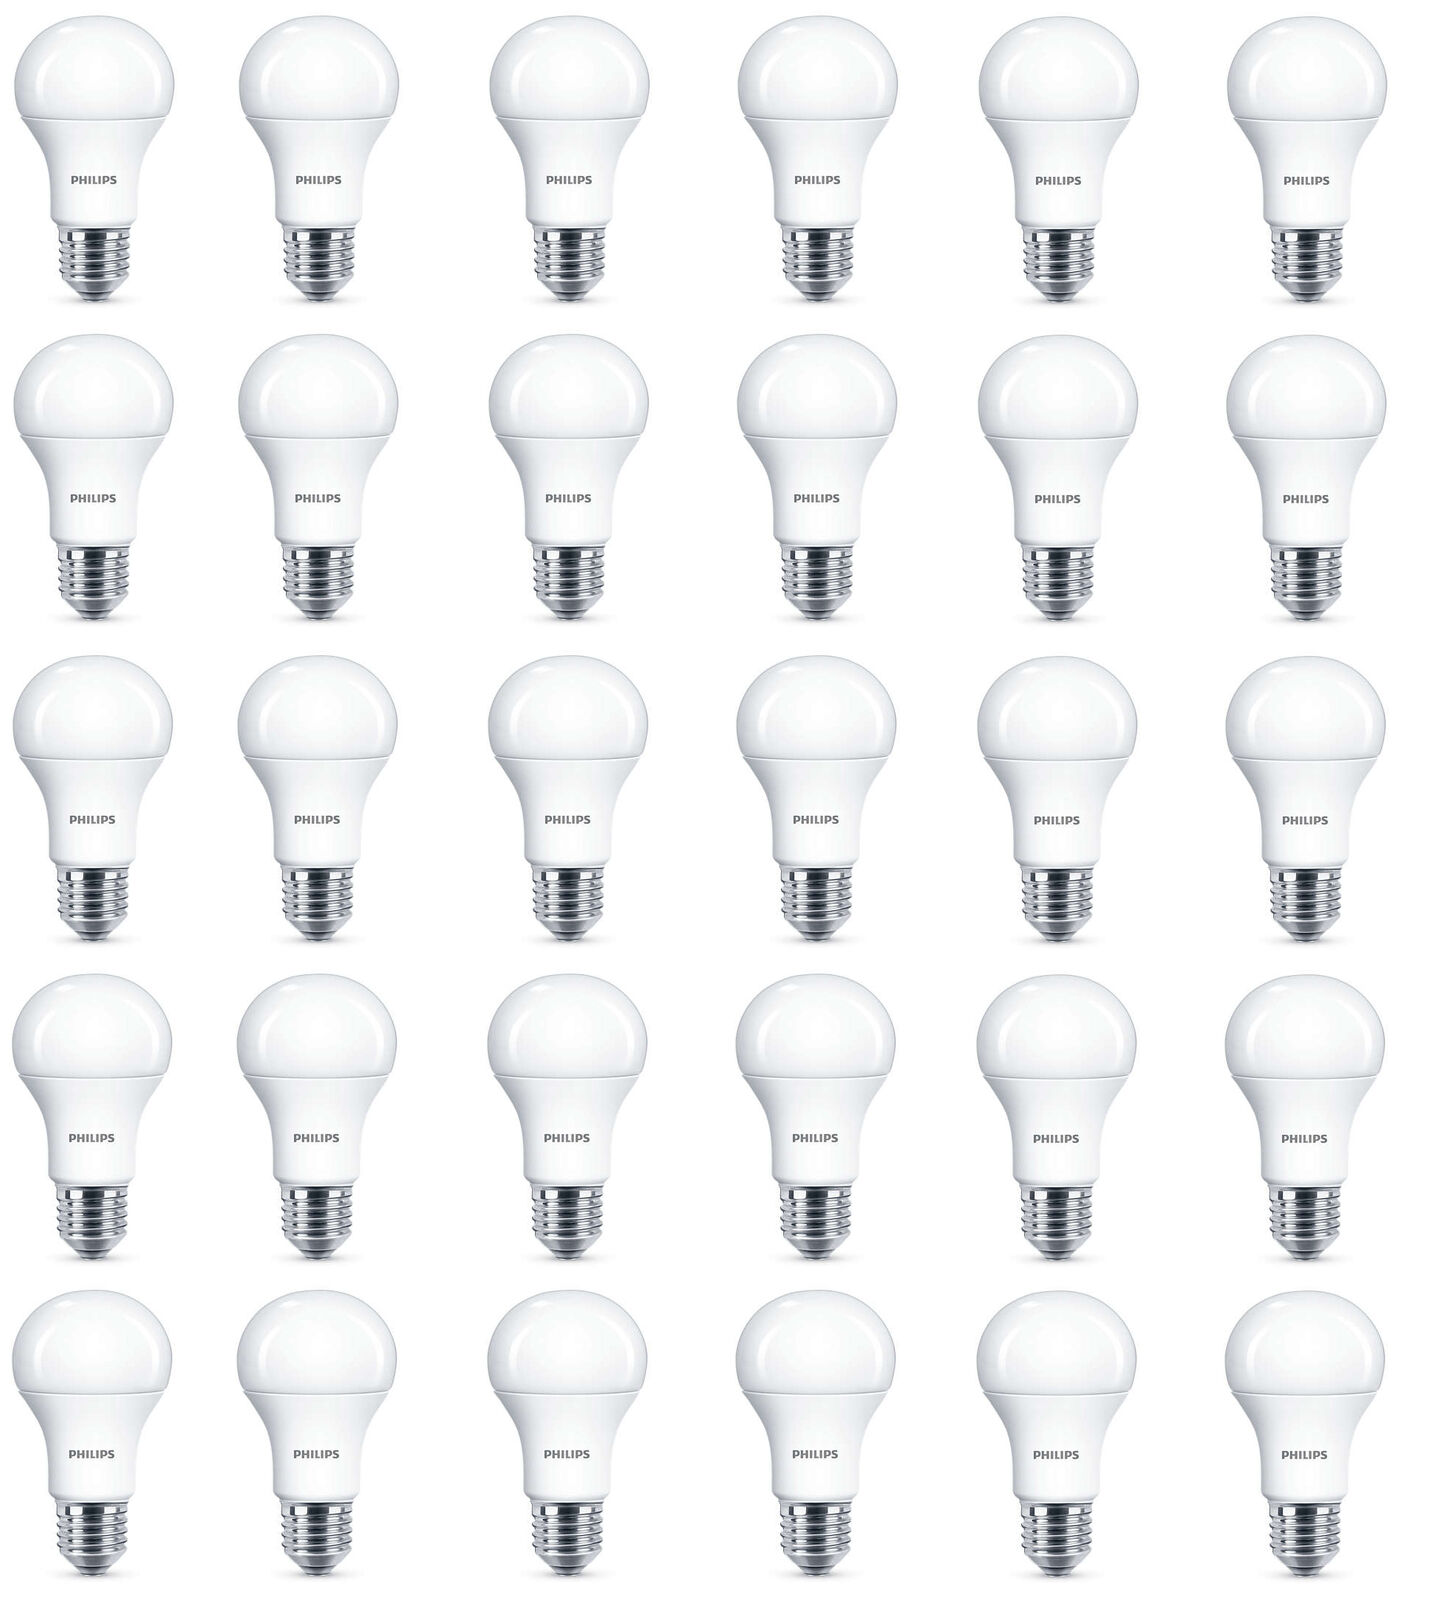 30 x Philips LED Frosted E27 Edison Screw 100w Warm blanco Light Bulb Lamp 1521lm